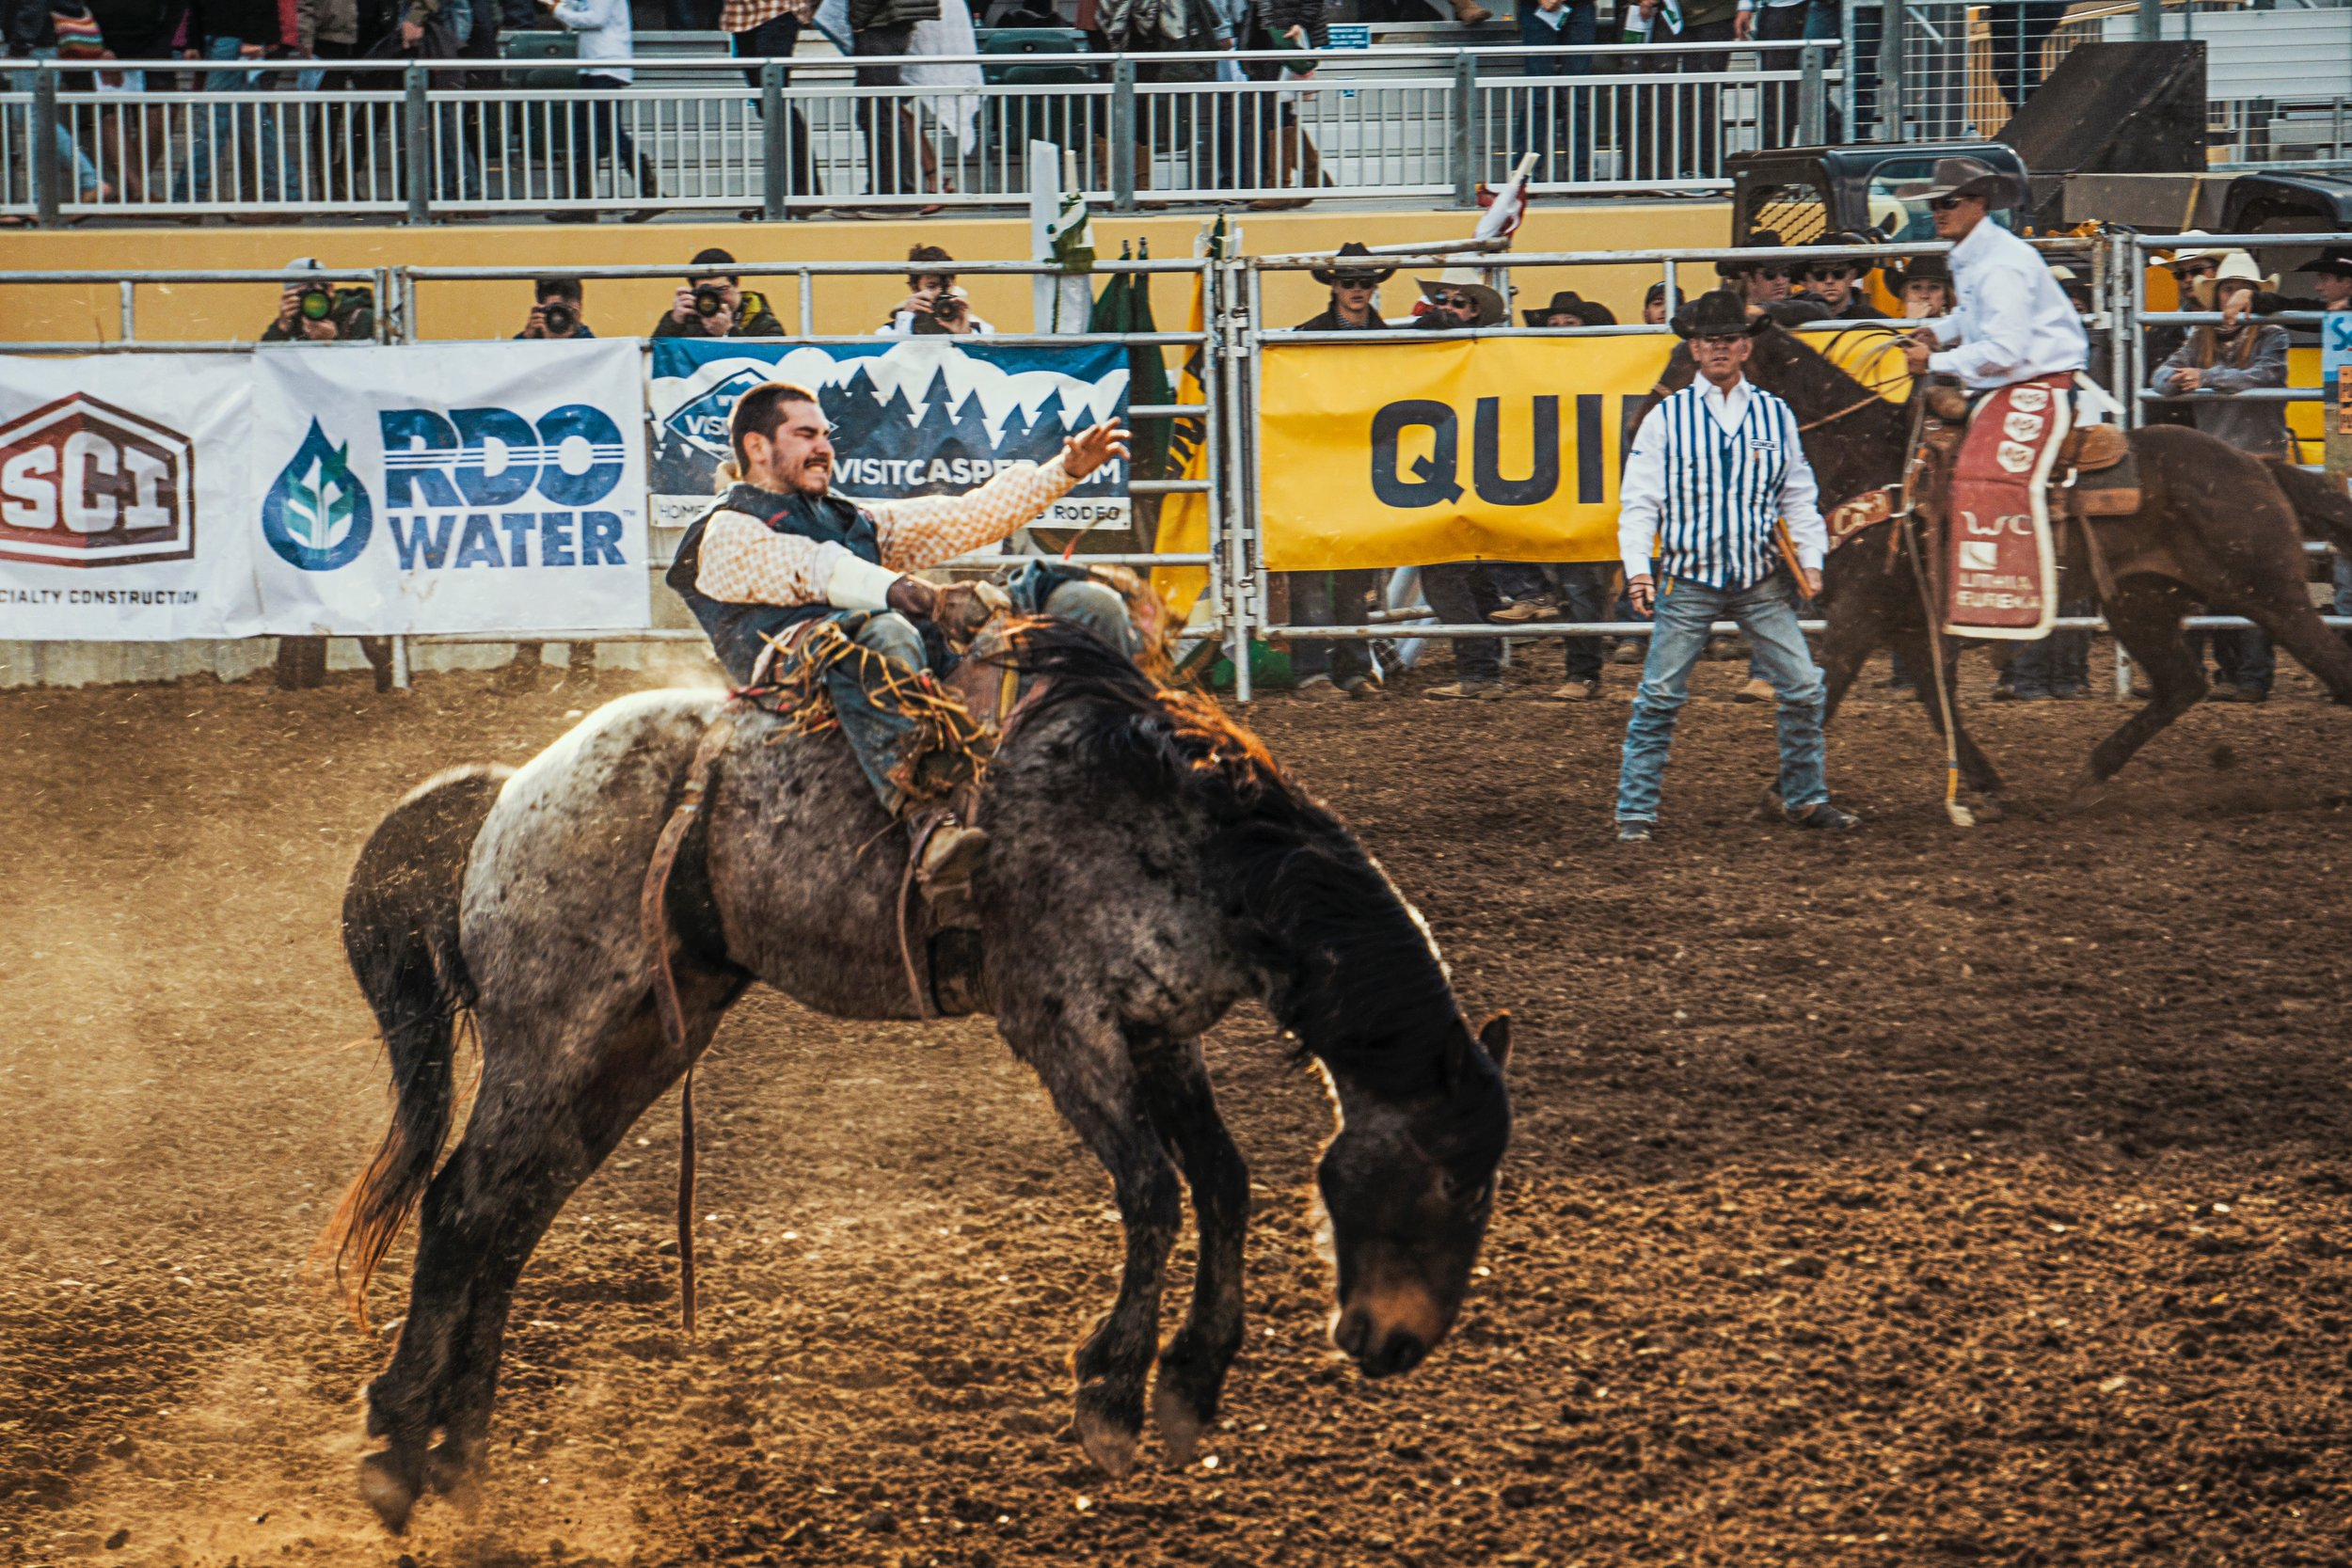 The American Rodeo -